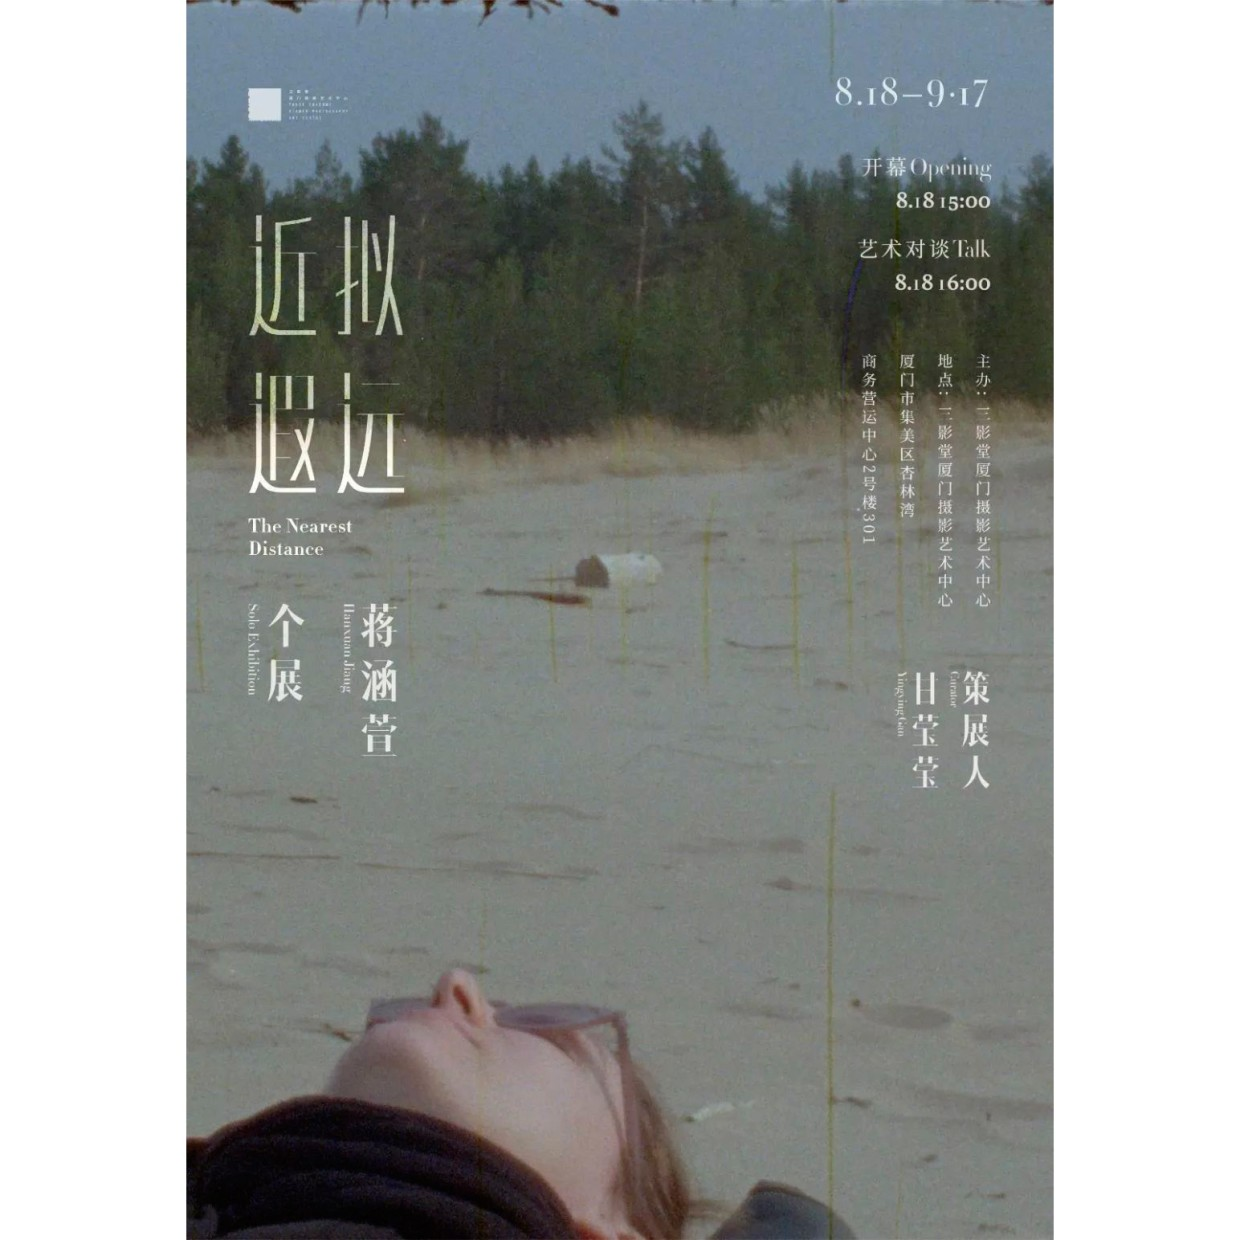 The Nearest Distance Huanxuan Jiang Solo Exhibition